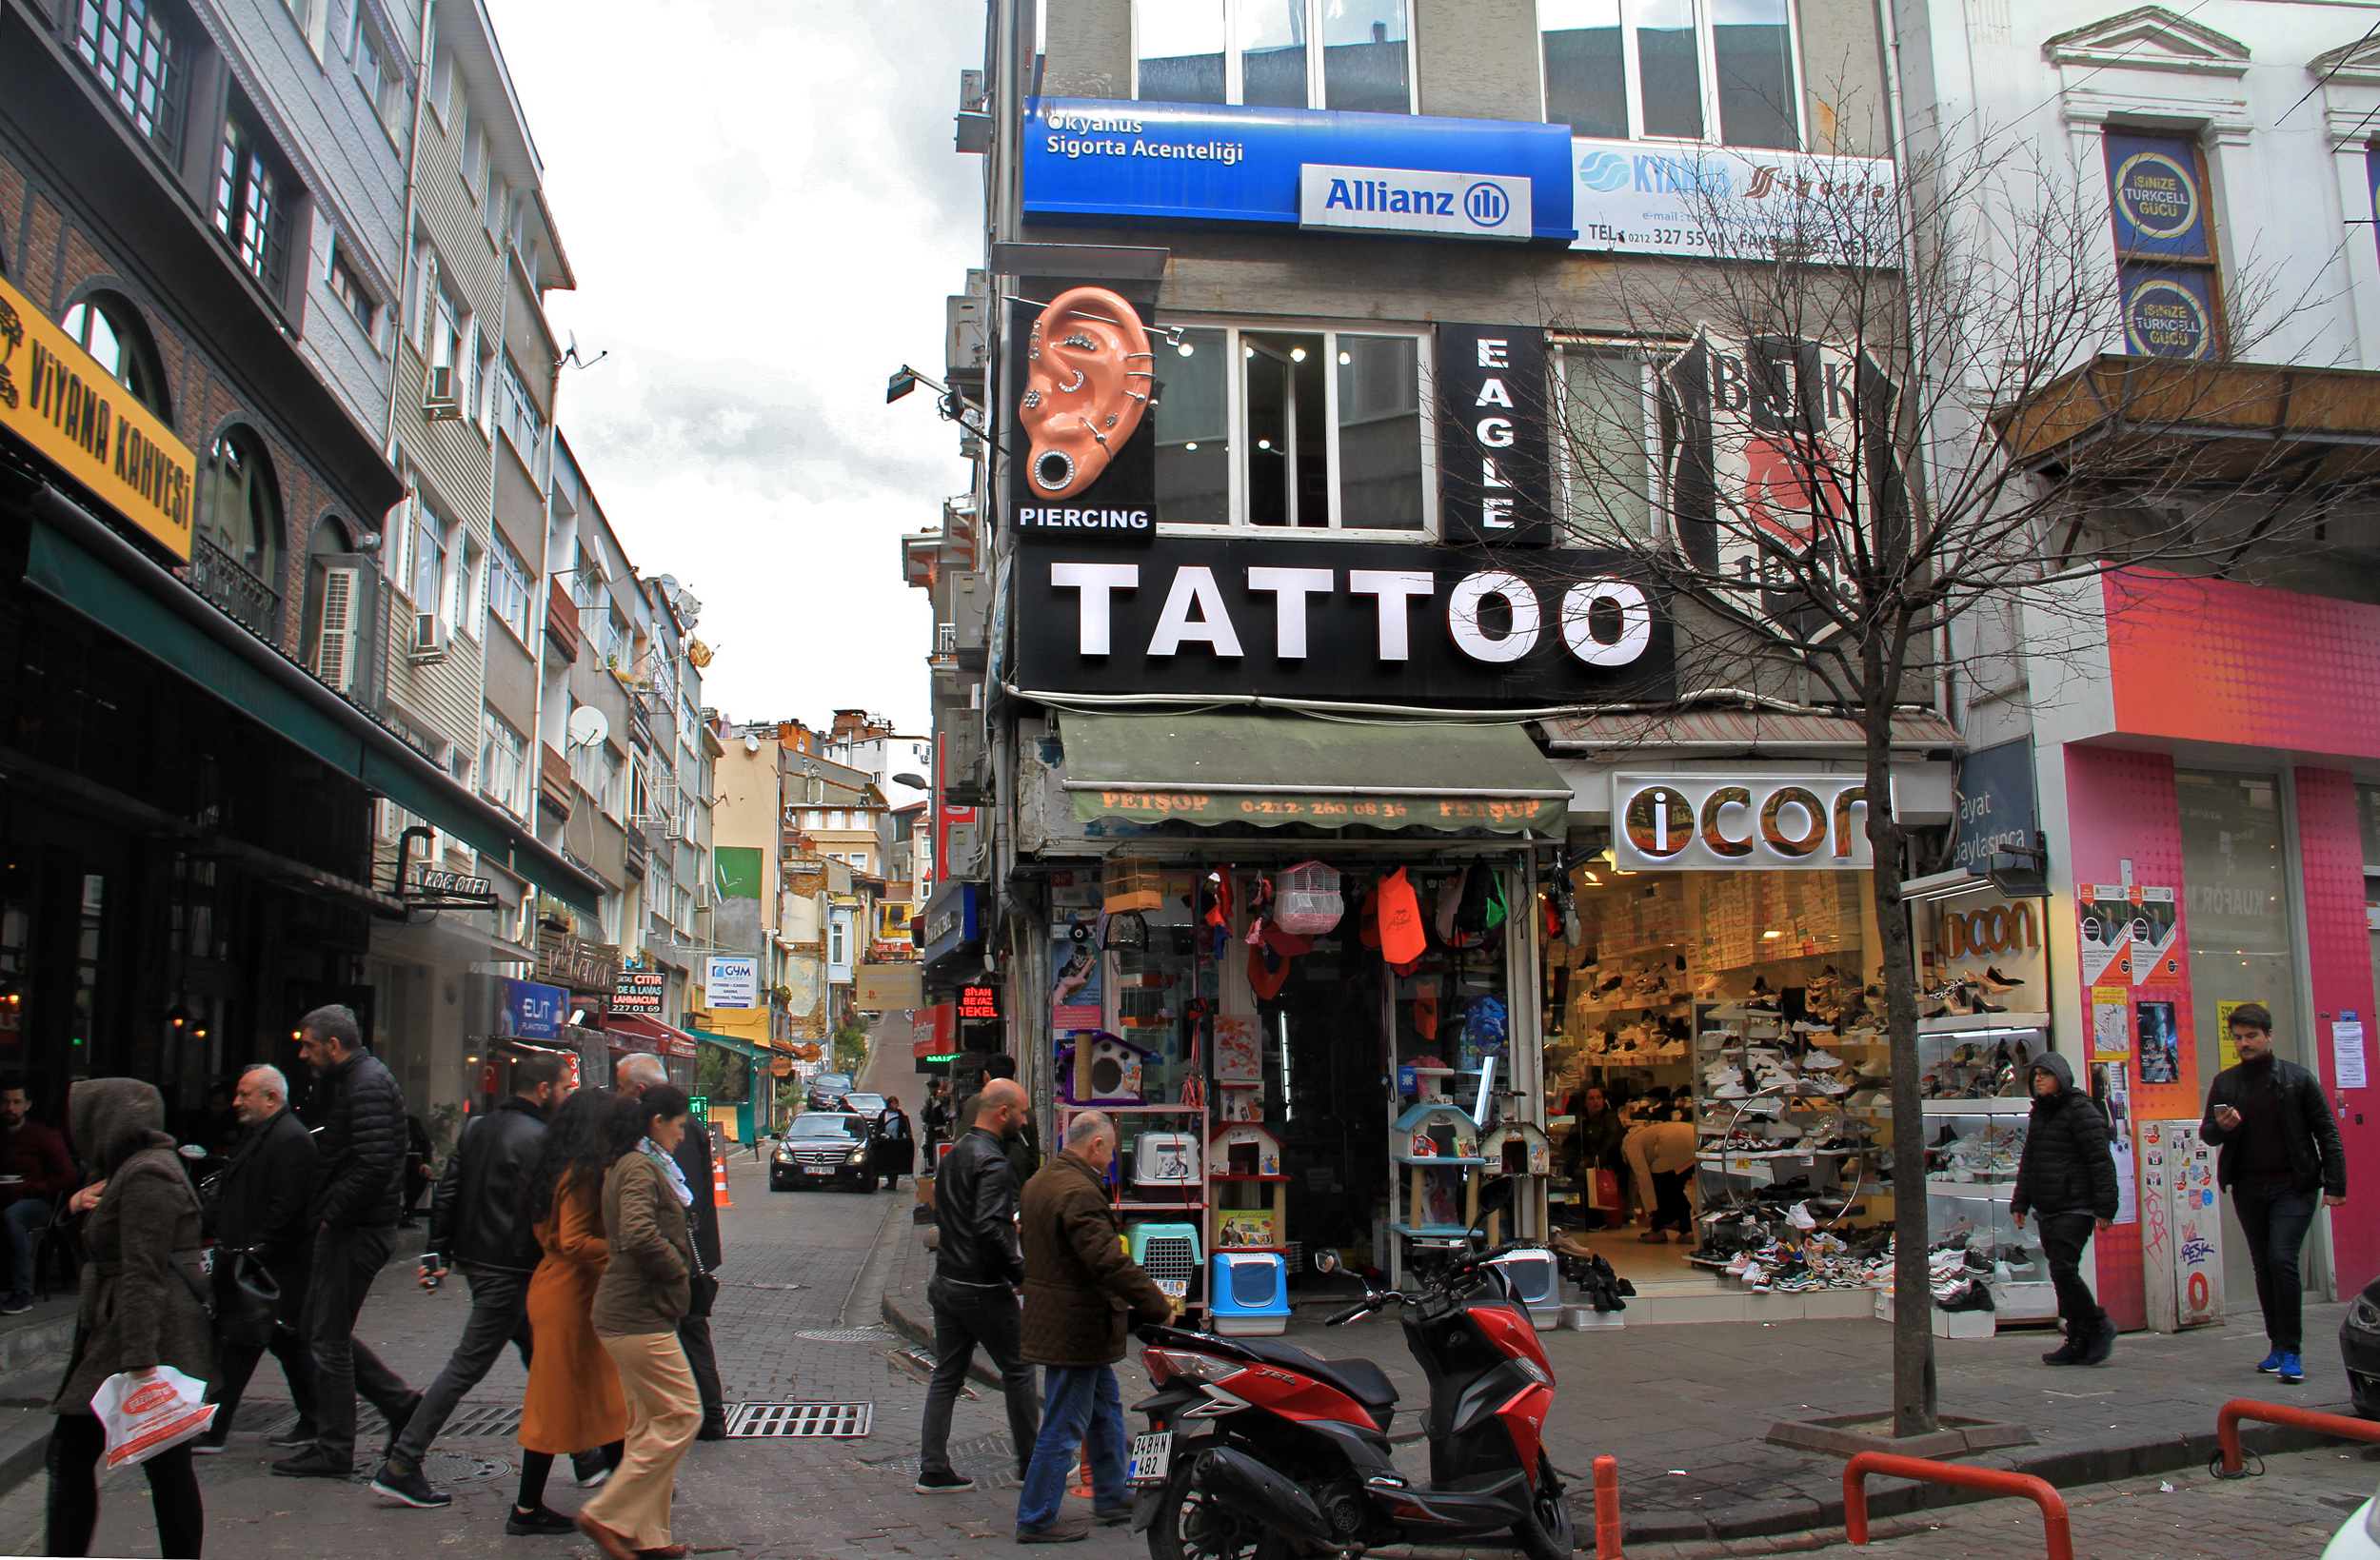 besiktas,piercing,tattoo